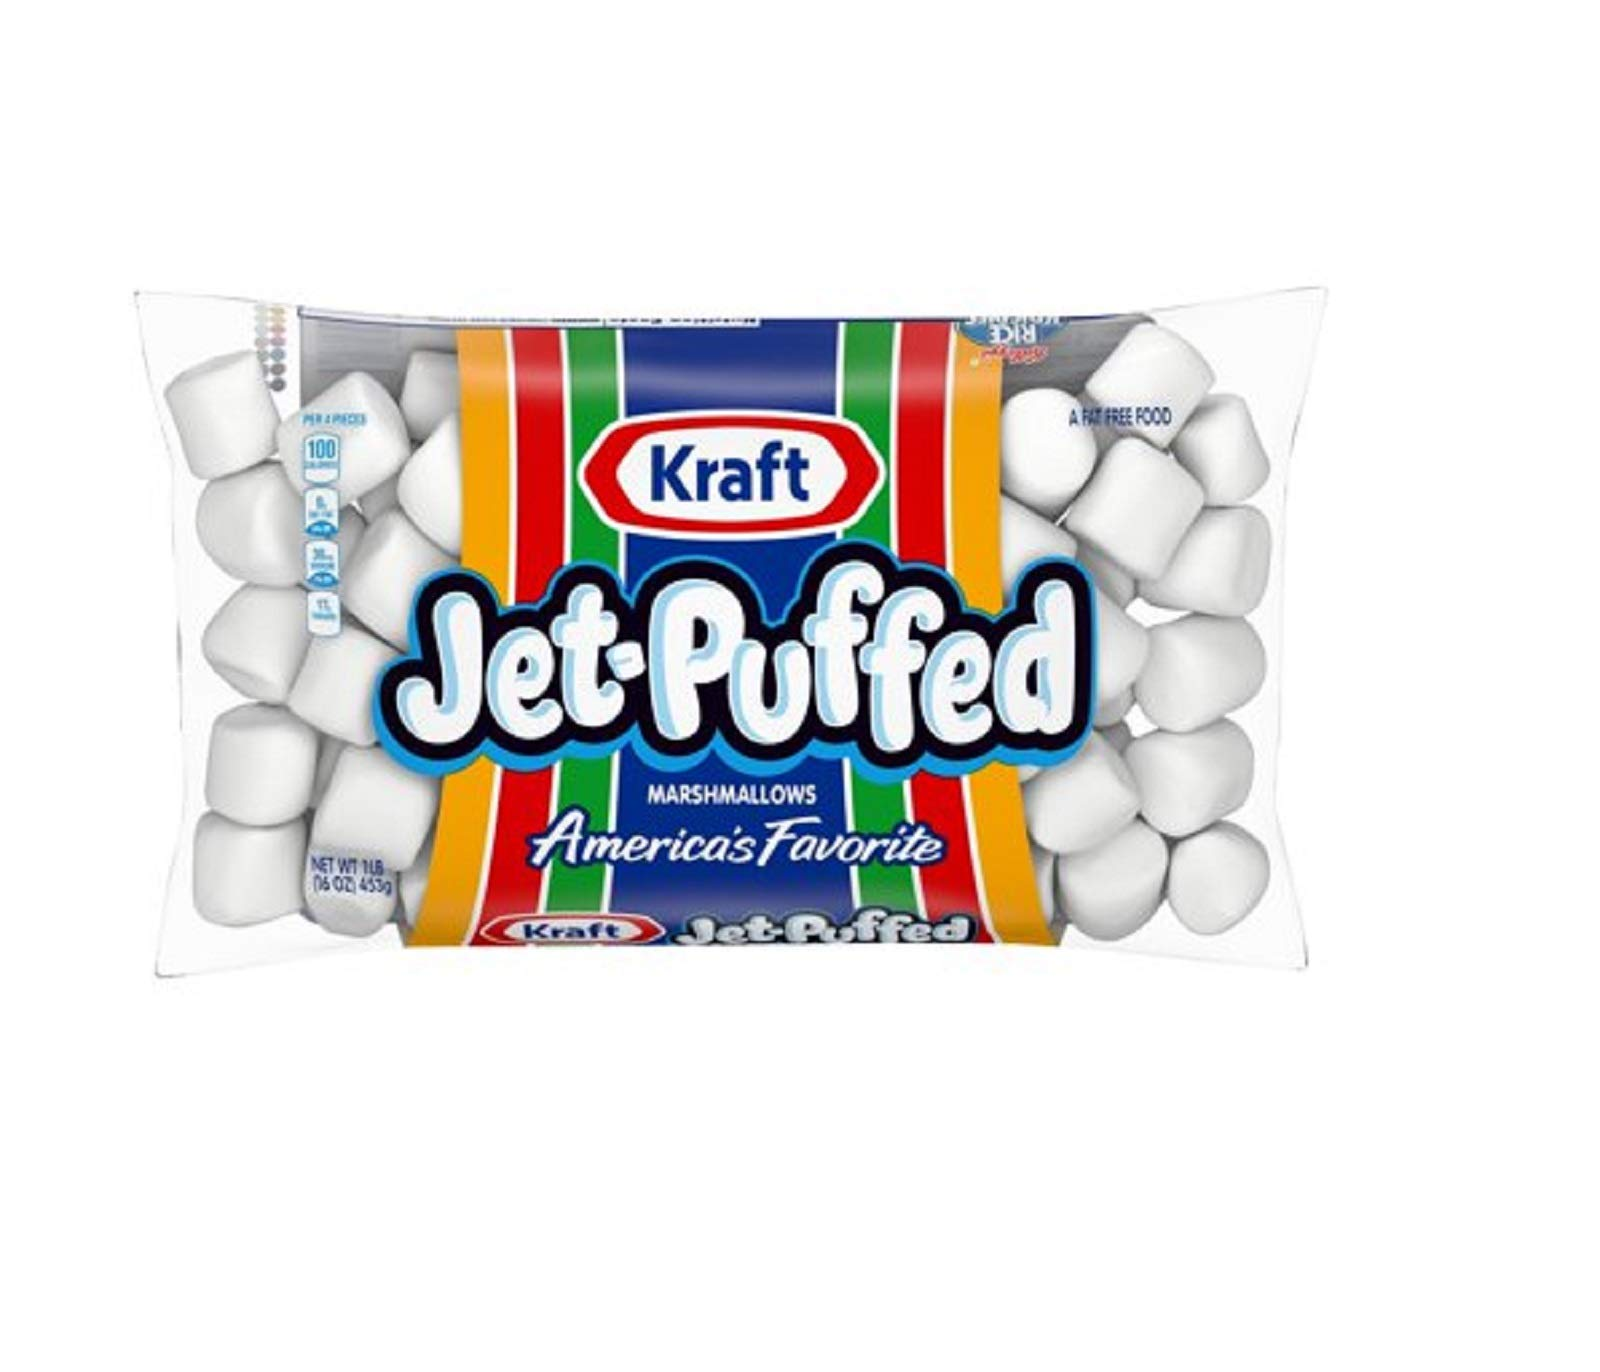 Kraft Jet-Puffed Miniature Marshmallows - 12 Pack by Kraft